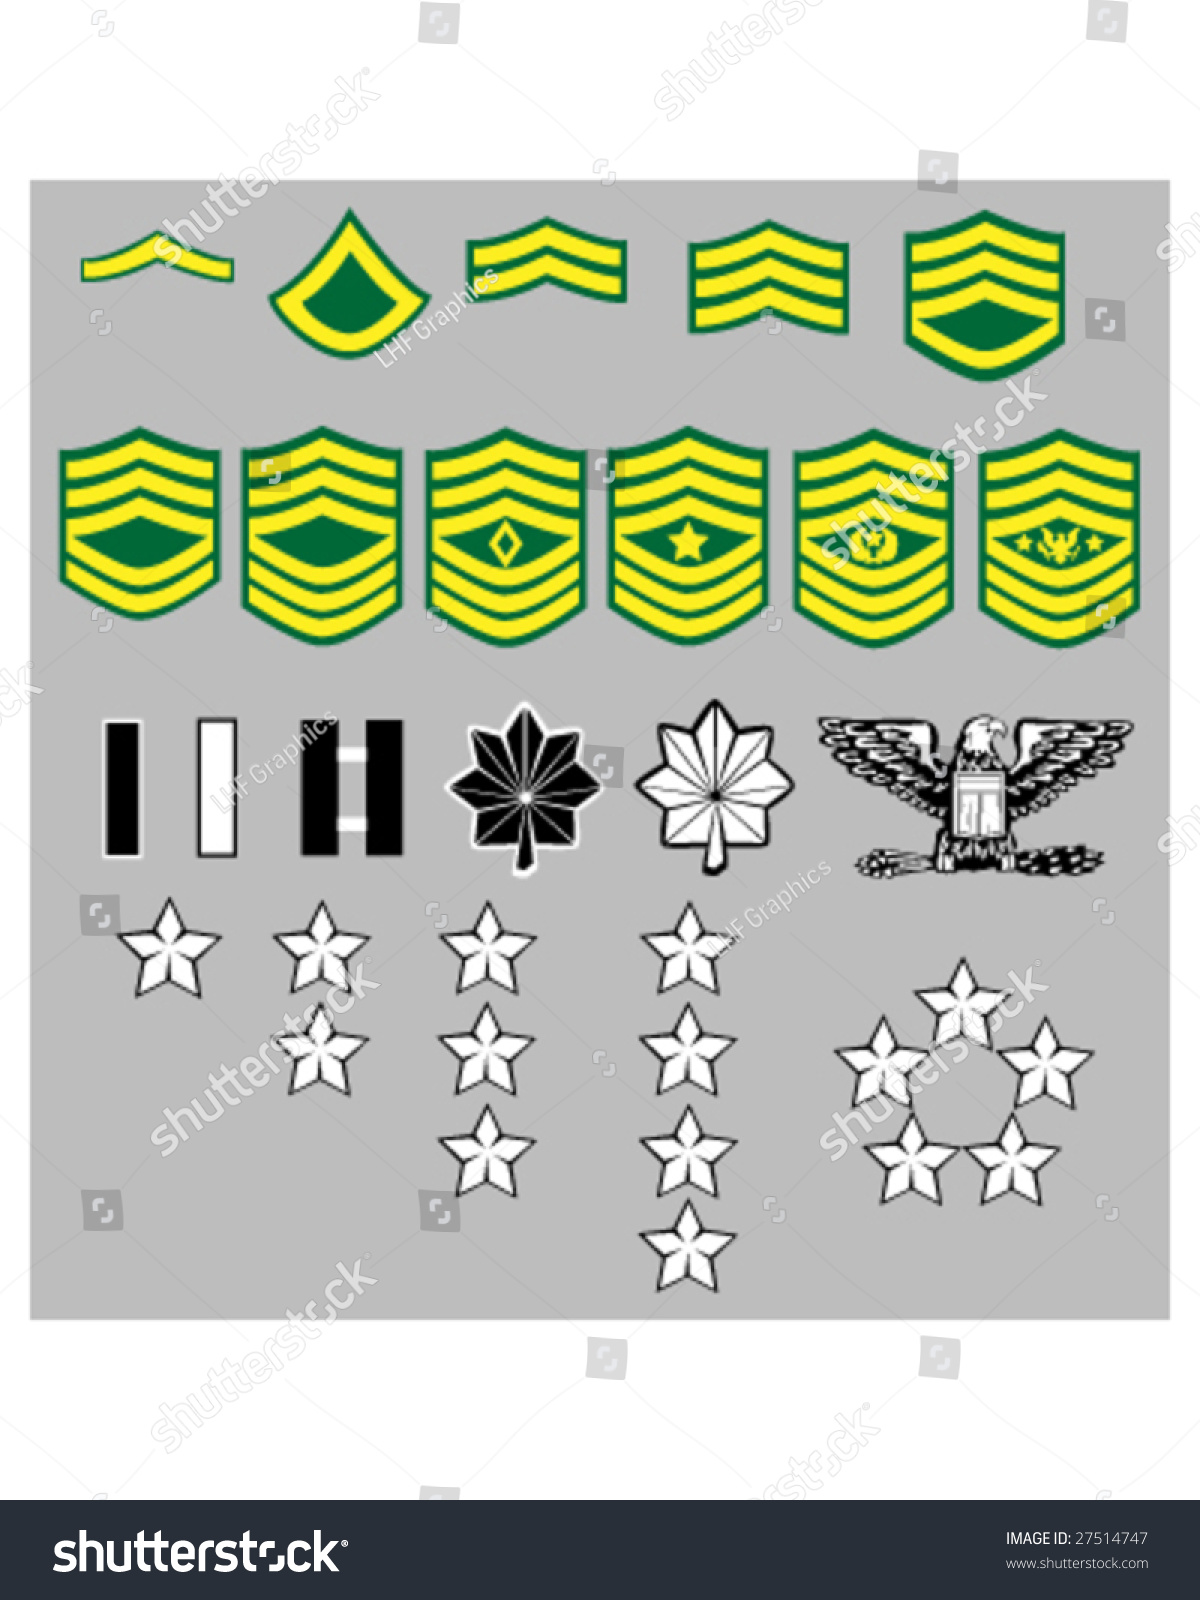 Us Army Rank Insignia Officers Enlisted Stock Vector 27514747 ...